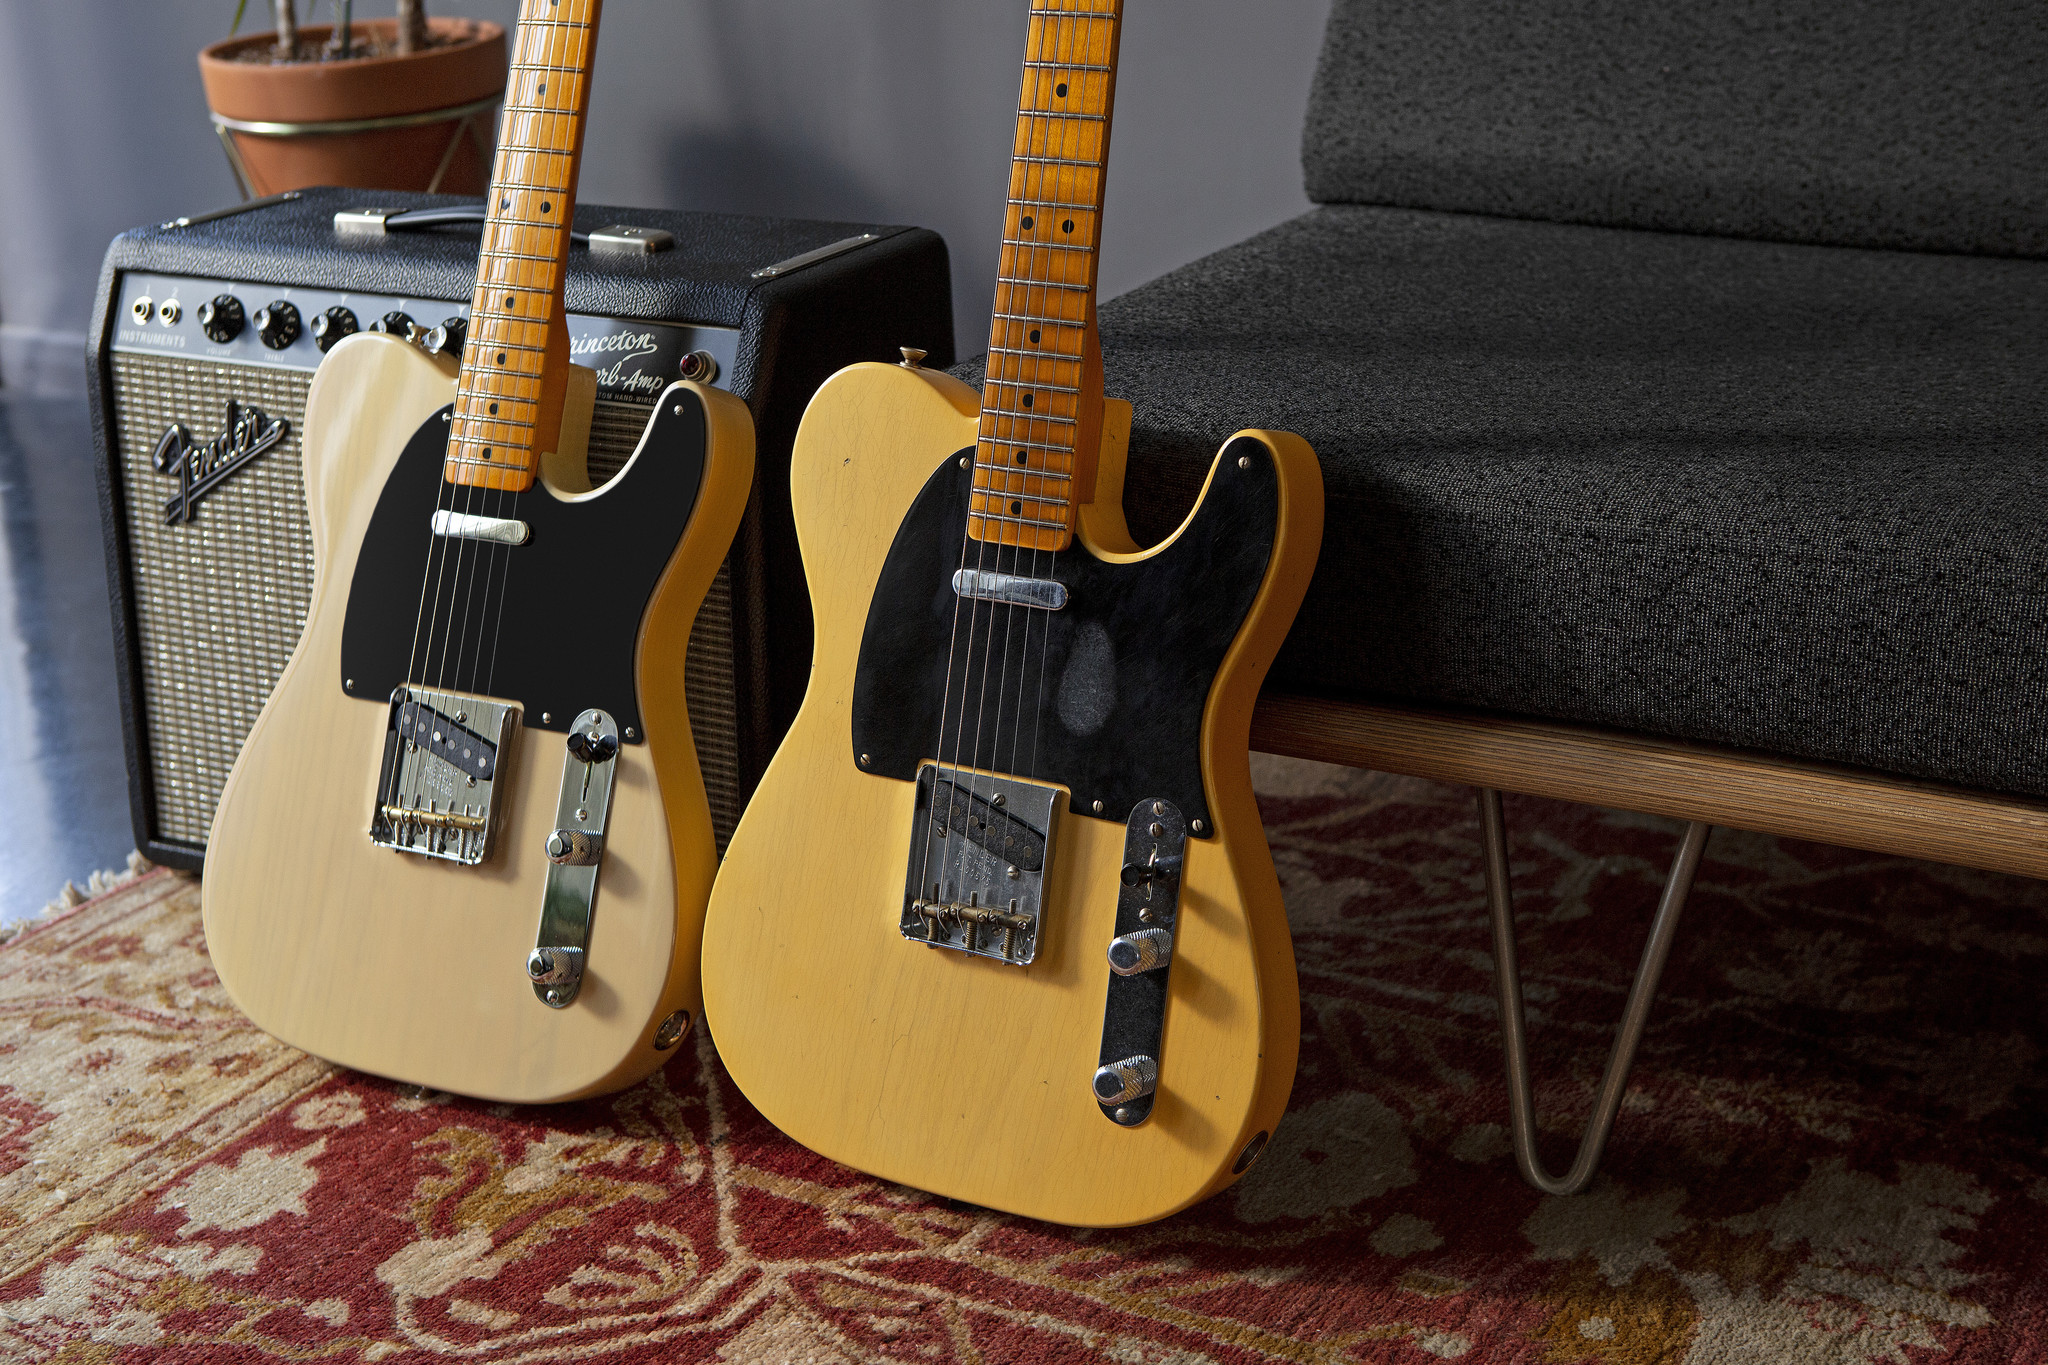 The 70th Anniversary Fender Broadcaster